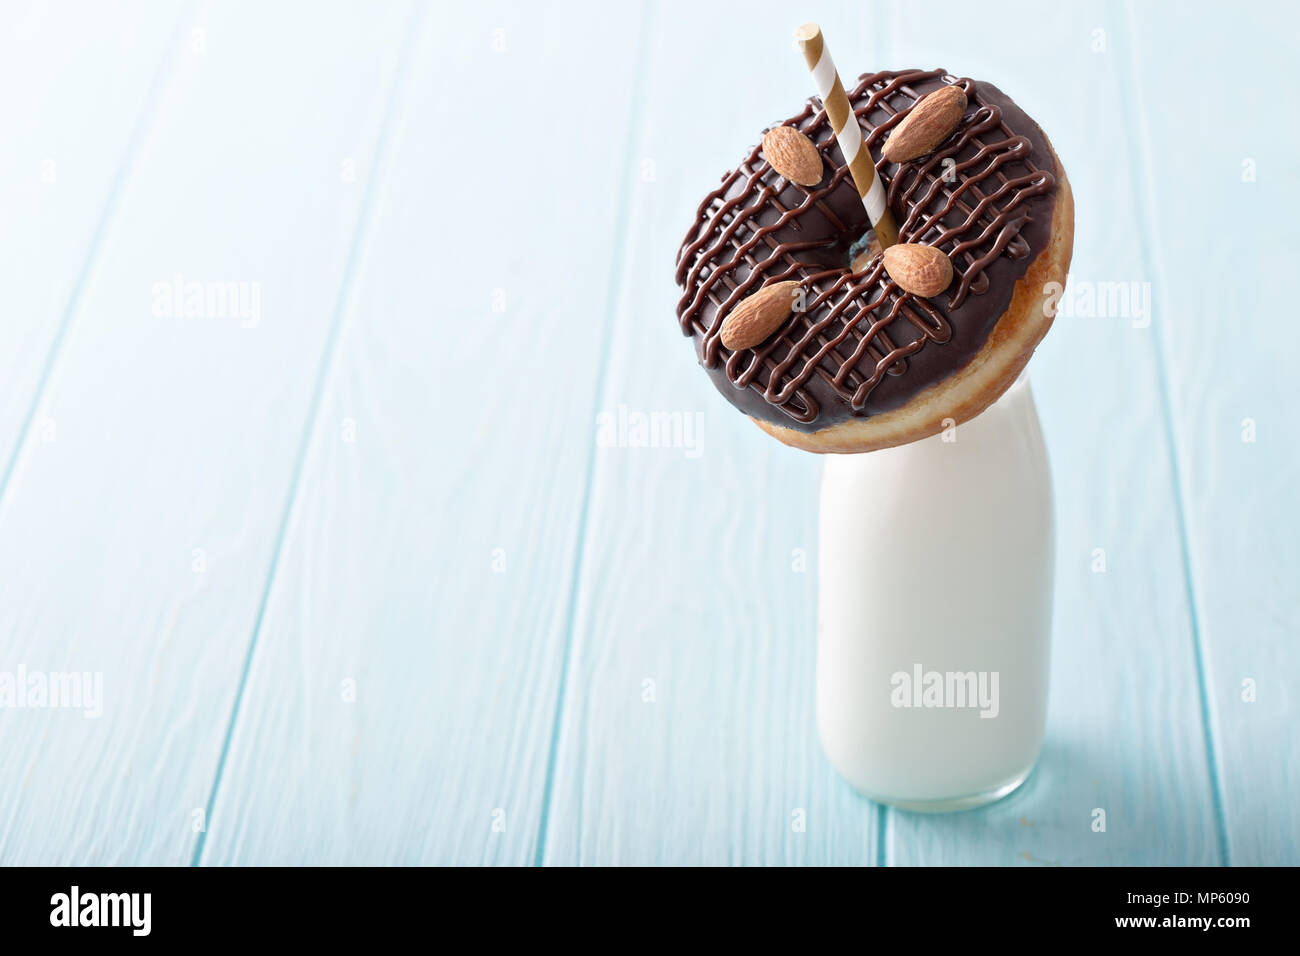 Chocolate almond donut with a bottle of milk - Stock Image